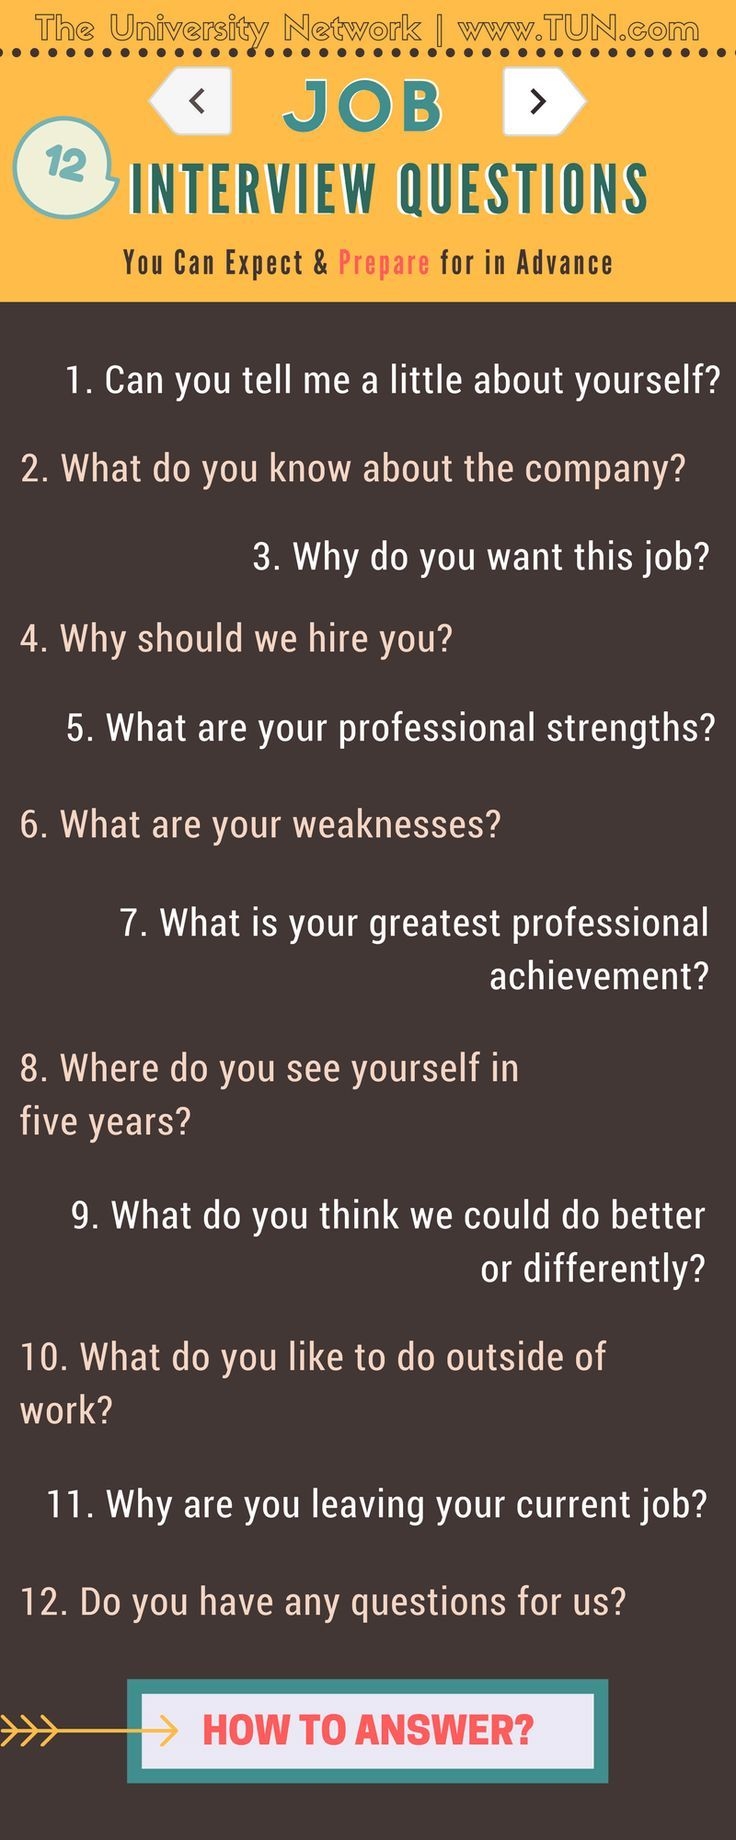 Securing a job would be so much easier if you know the questions a hiring manager will ask in your next interview. Well, we'll give you the next best thing: a list of the most commonly asked questions and answers!